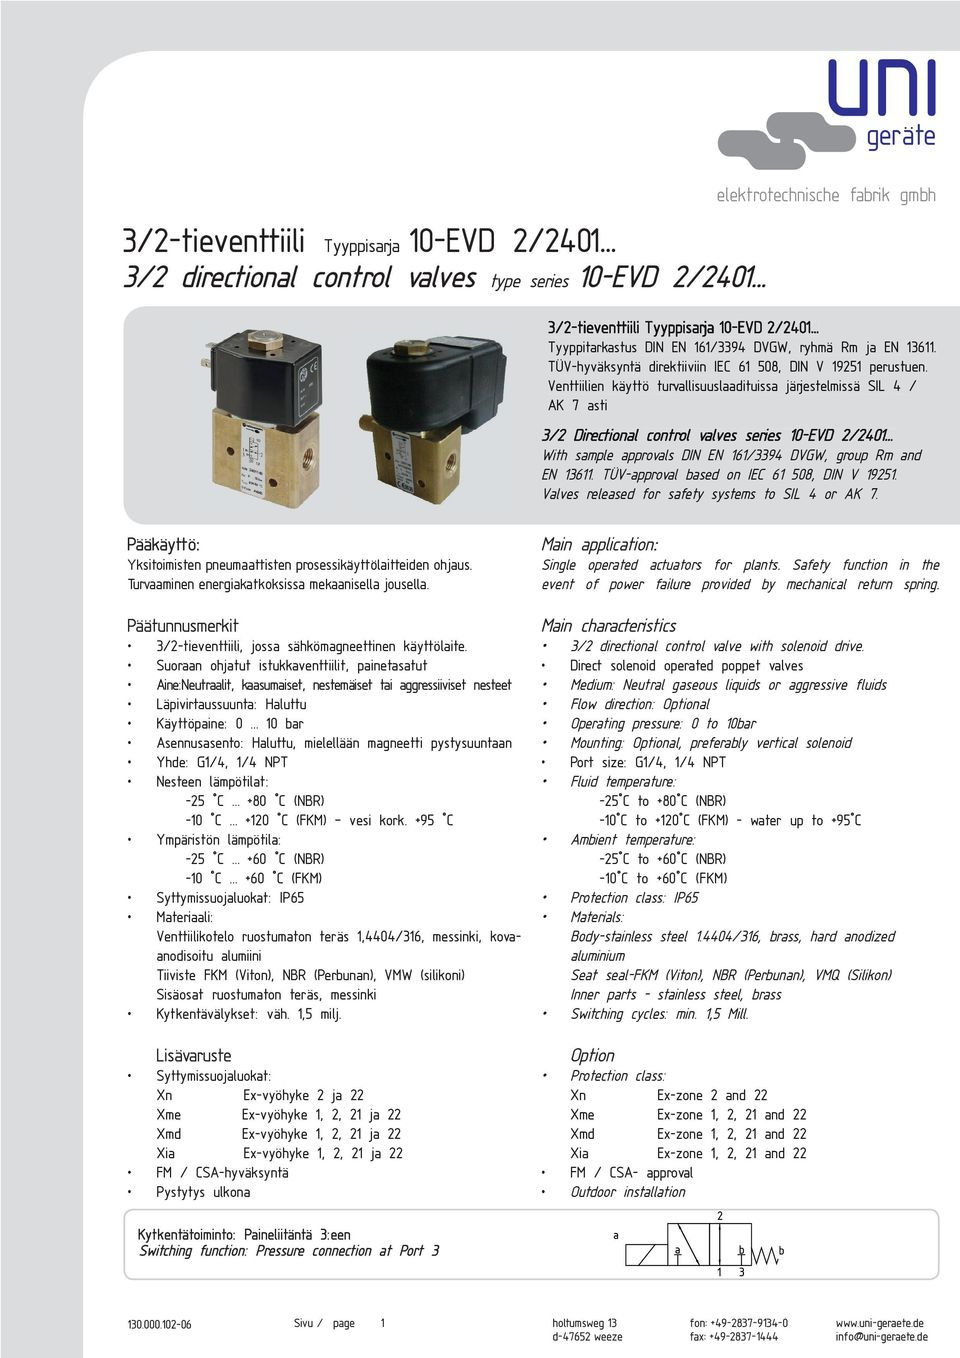 Venttiilien käyttö turvallisuuslaadituissa järjestelmissä SIL 4 / AK 7 asti 3/2 Directional control valves series 10-EVD 2/2401... With sample approvals DIN EN 161/3394 DVGW, group Rm and EN 13611.